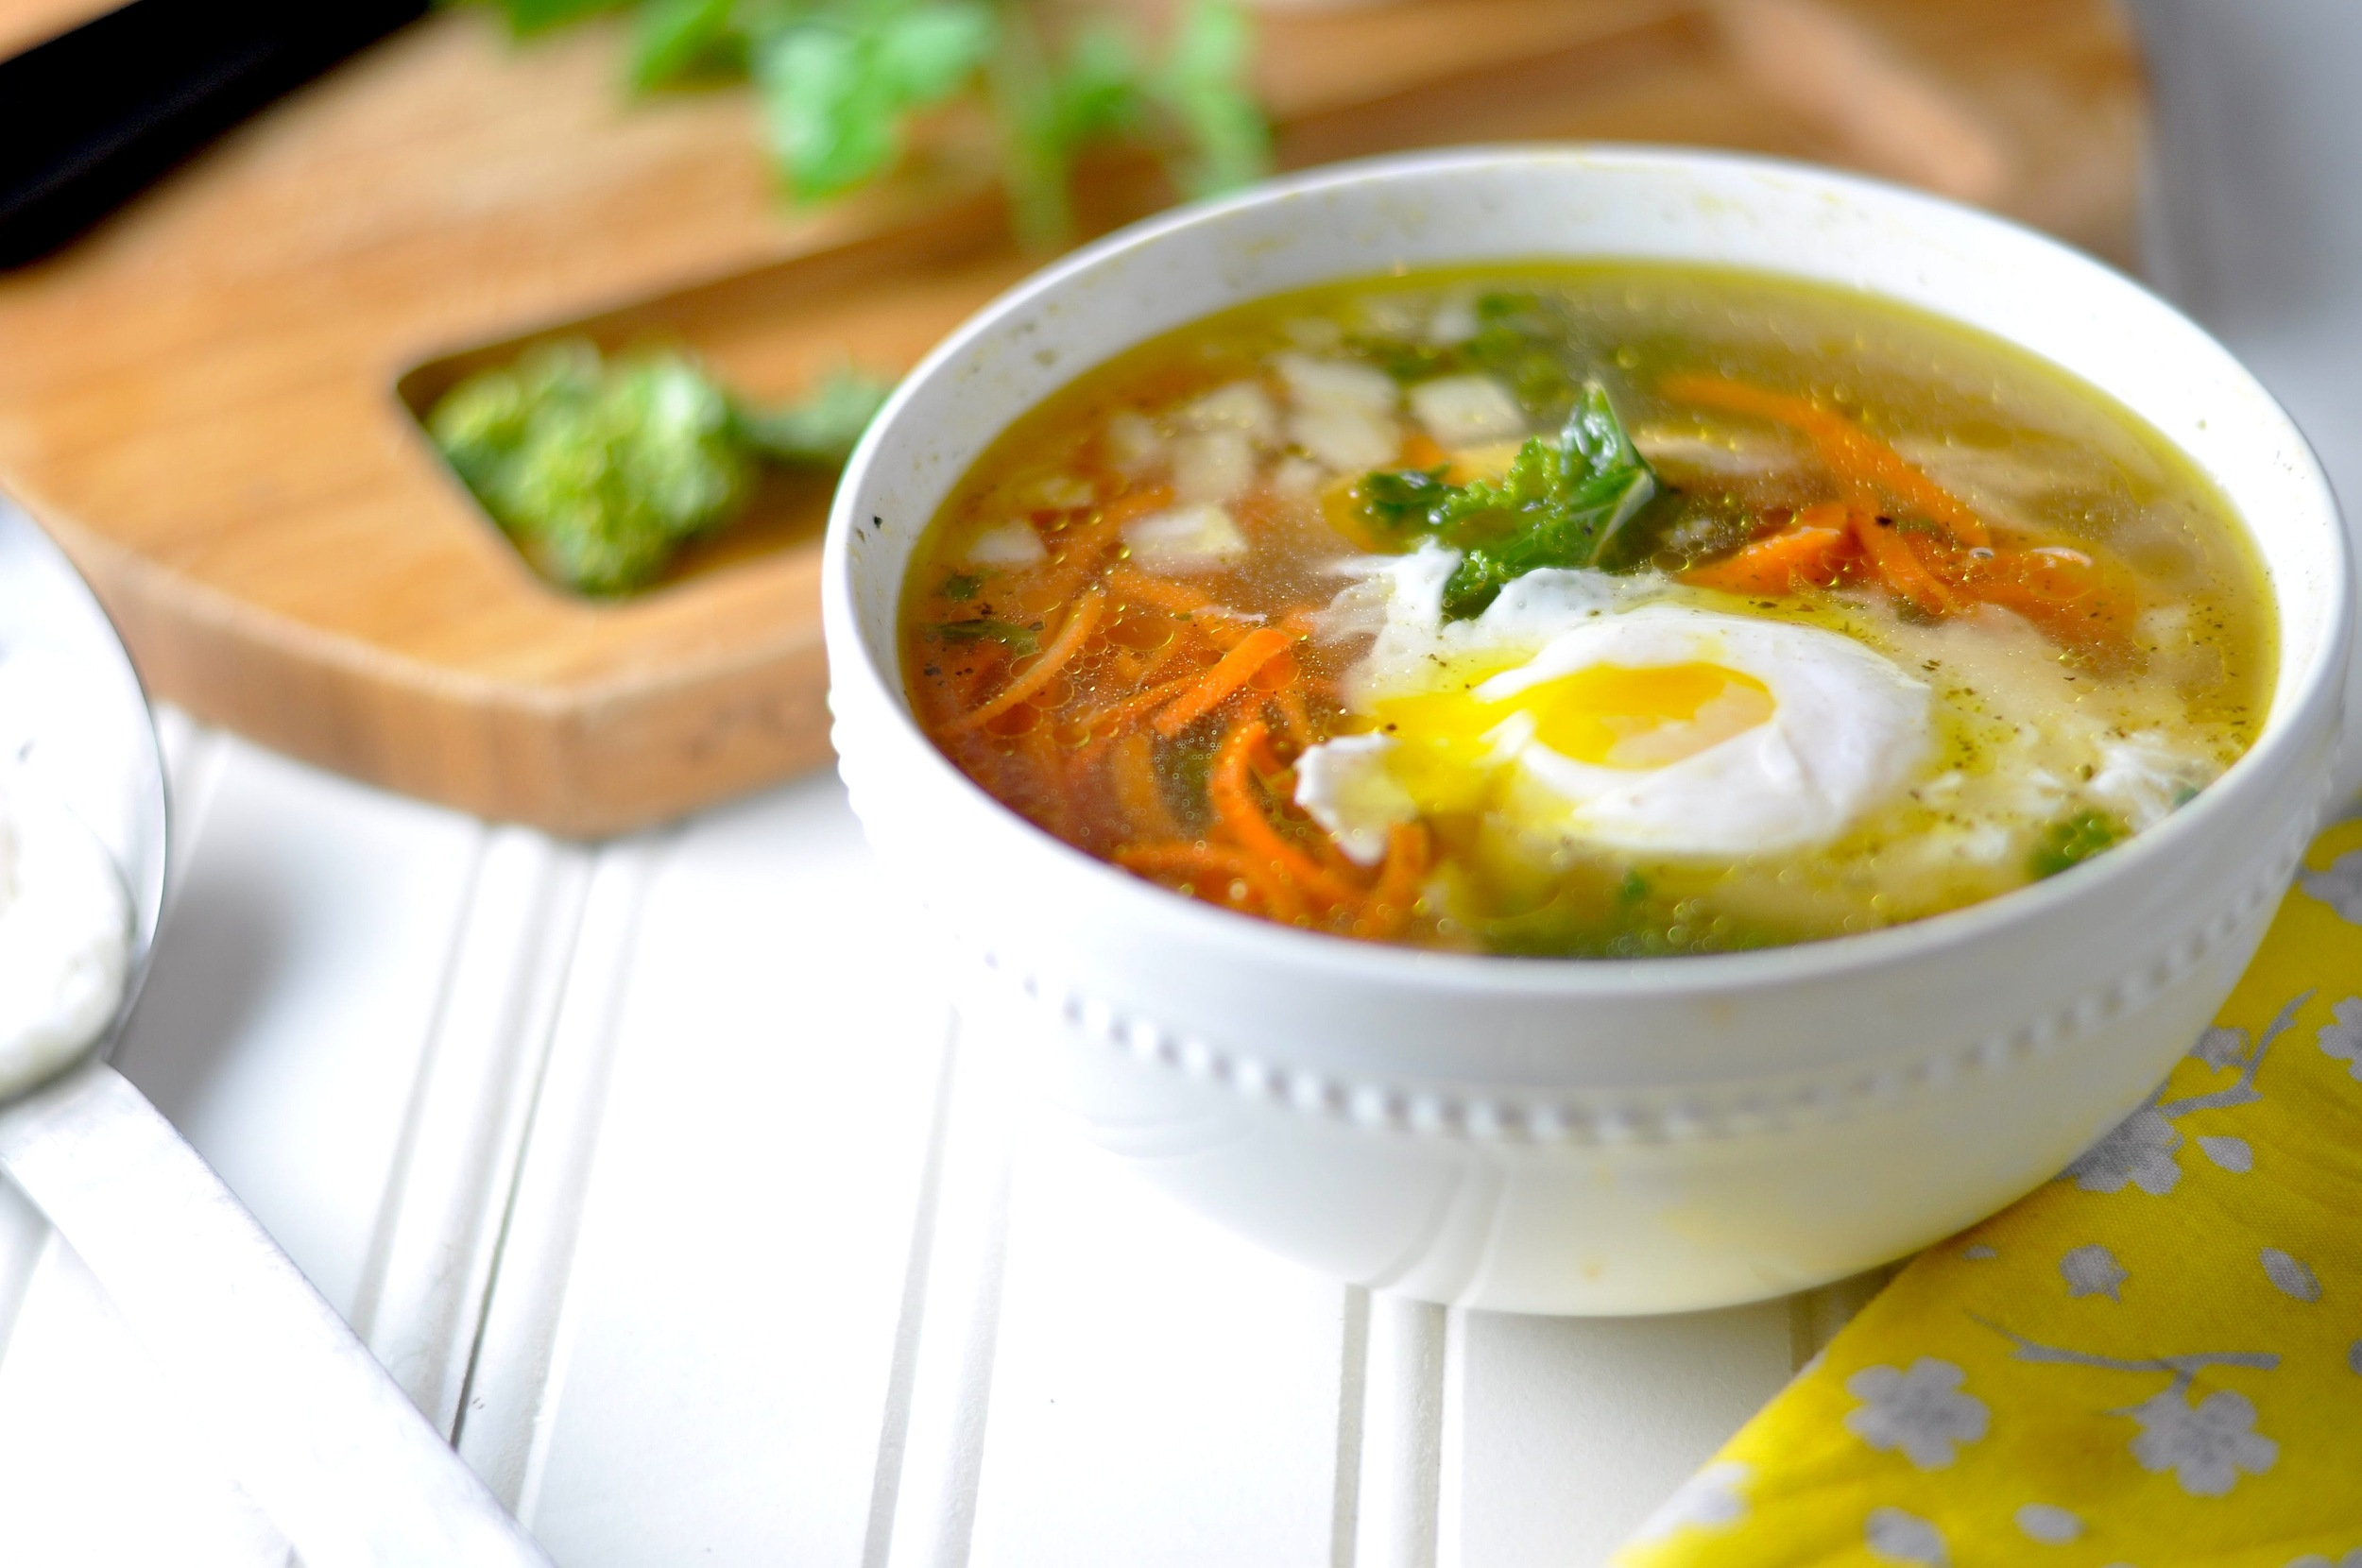 chicken kale soup with poached egg